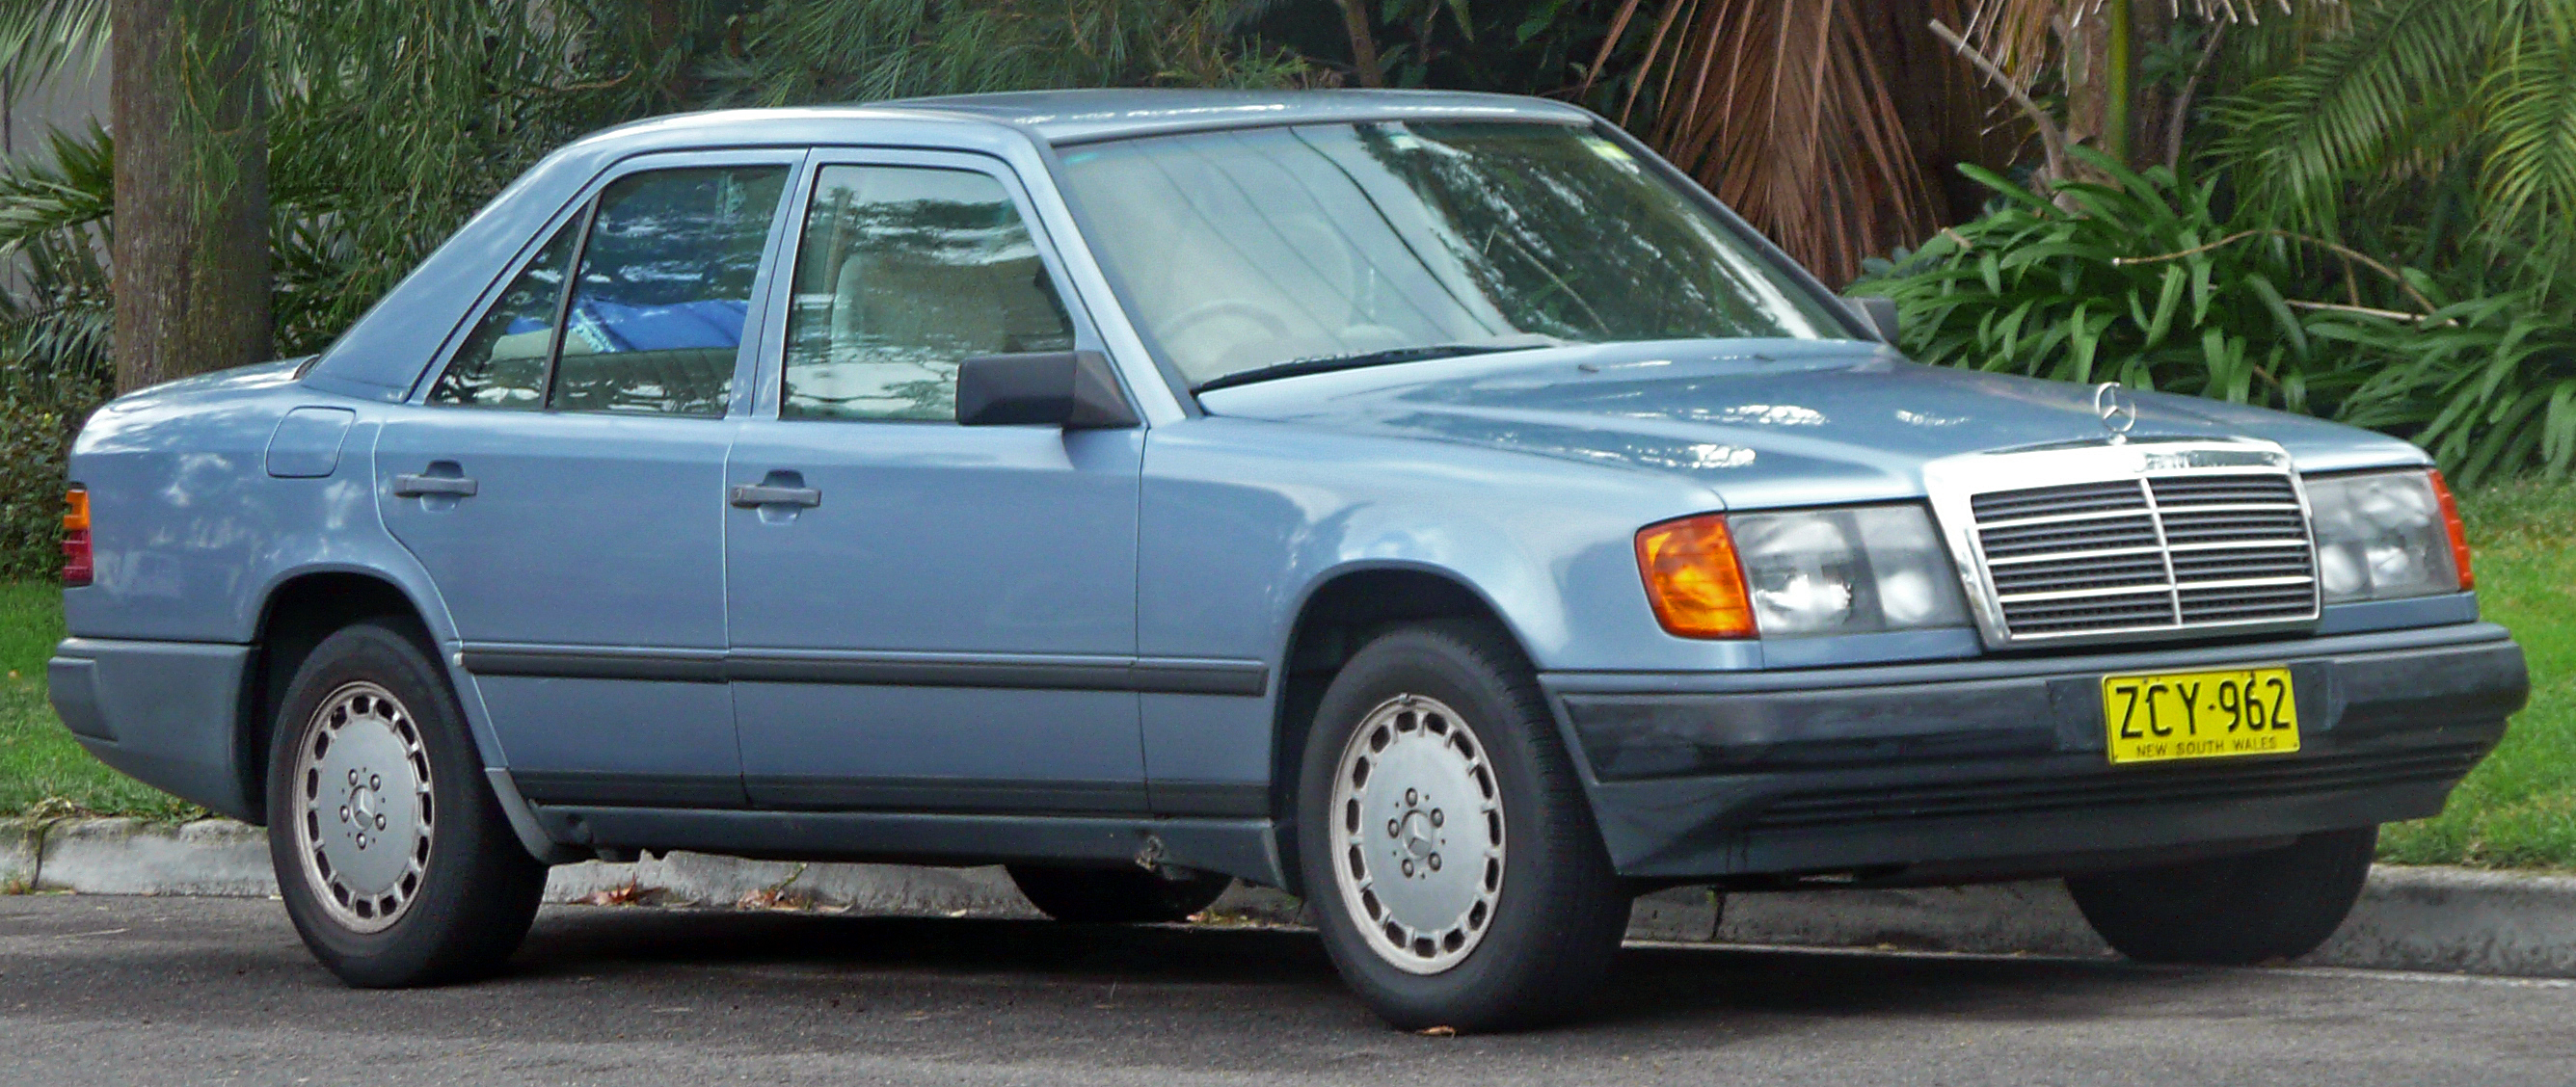 ssangyong chairman (w124) 2012 wallpaper